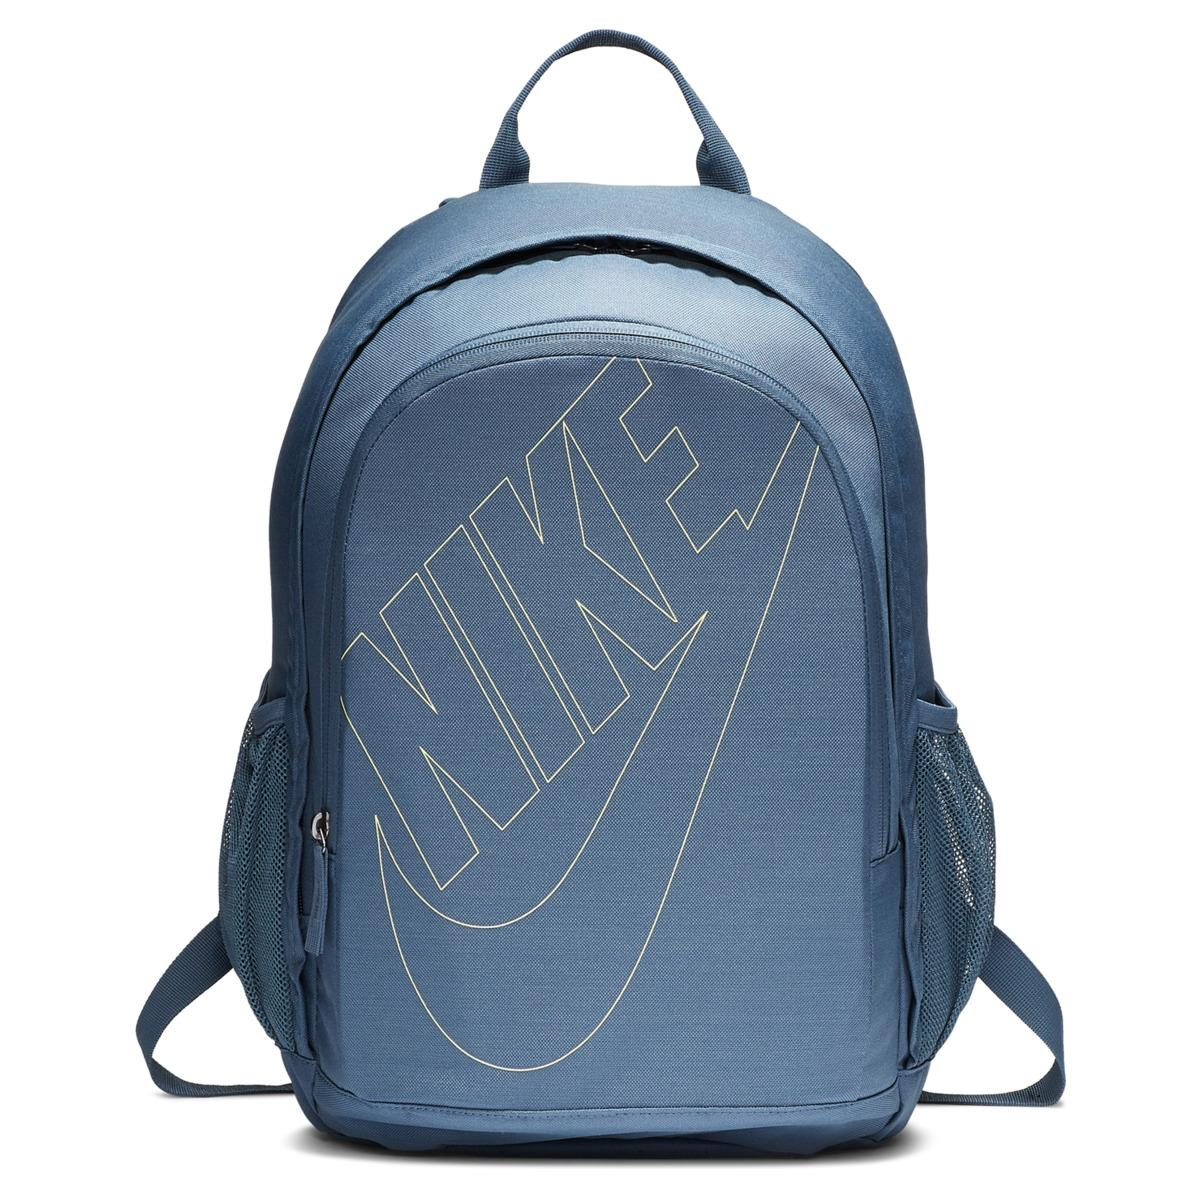 27691f9eb9 Lyst - Nike Sportswear Hayward Futura Backpack in Blue for Men